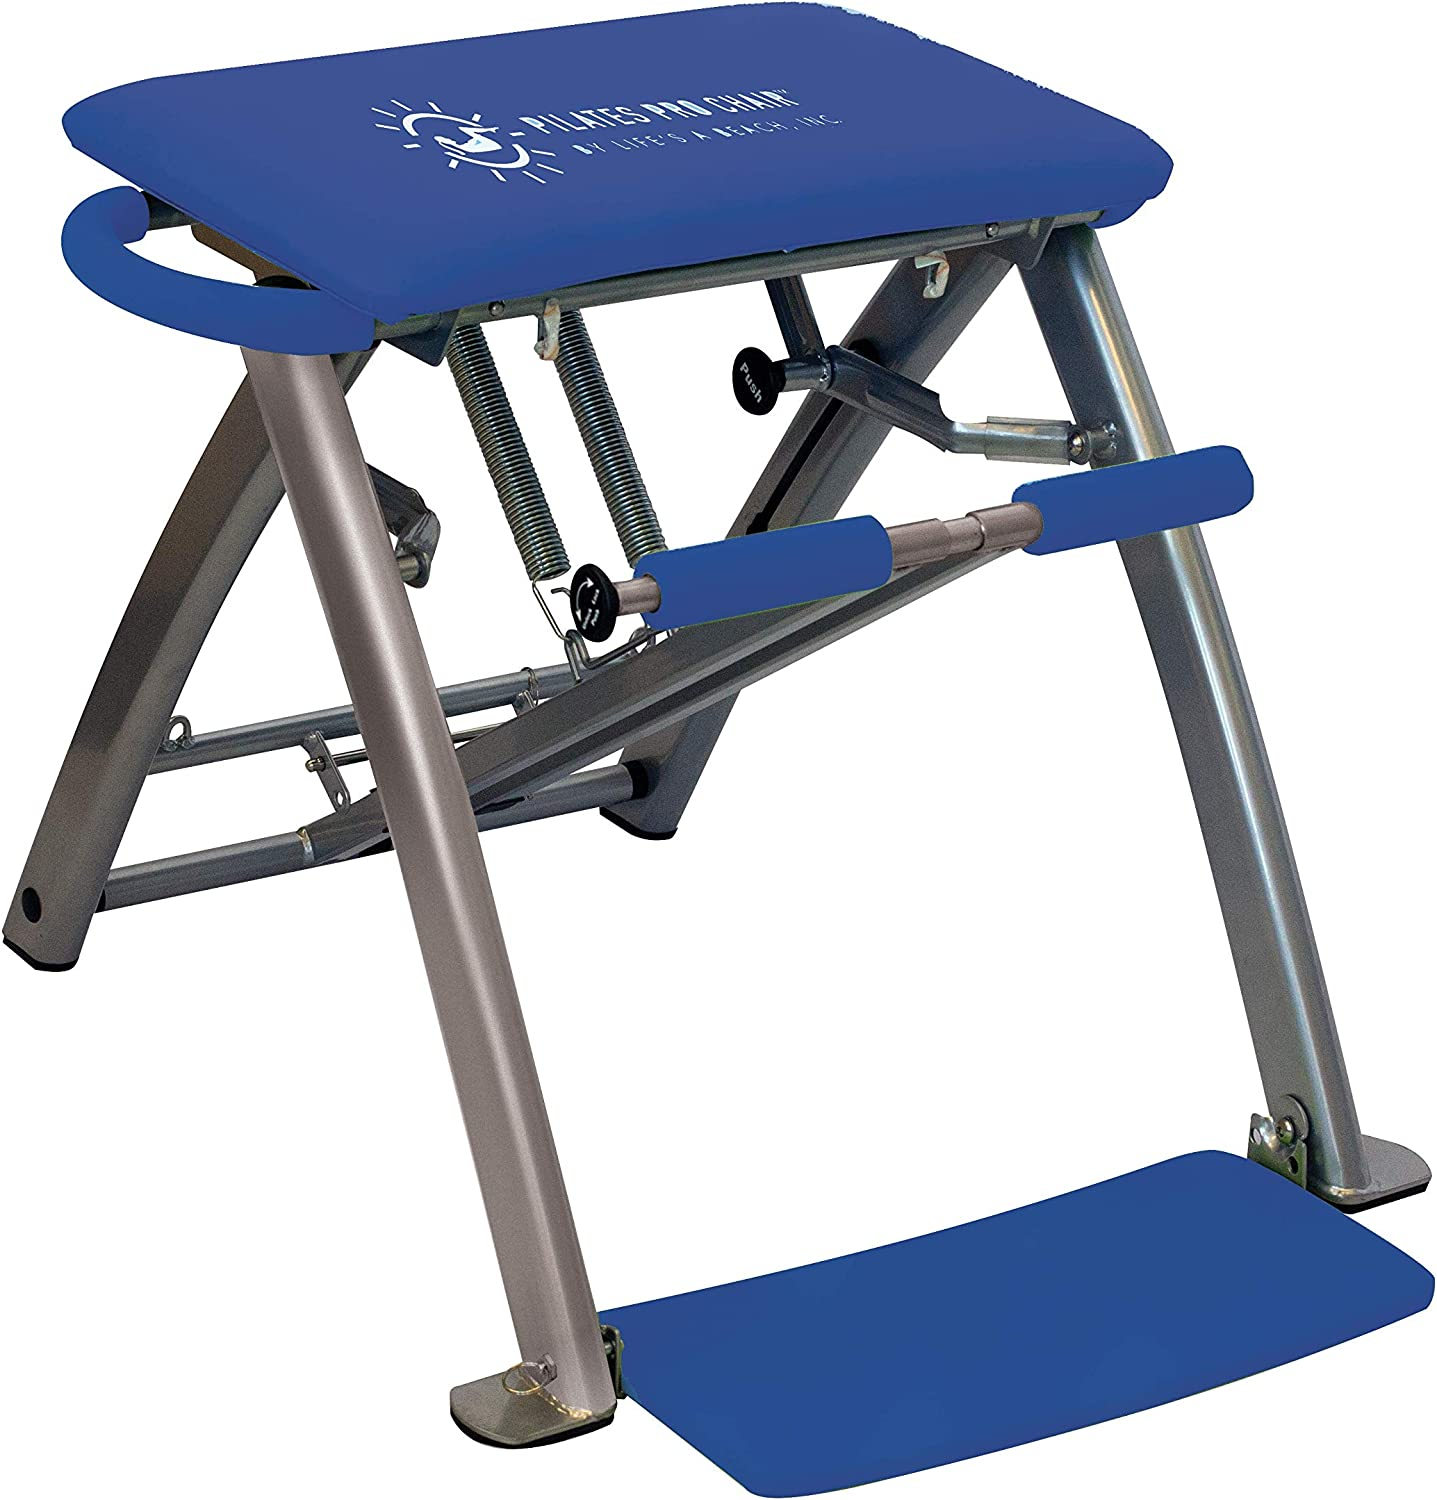 #2. Life's A Beach Pilates PRO Chair with 4 DVDs